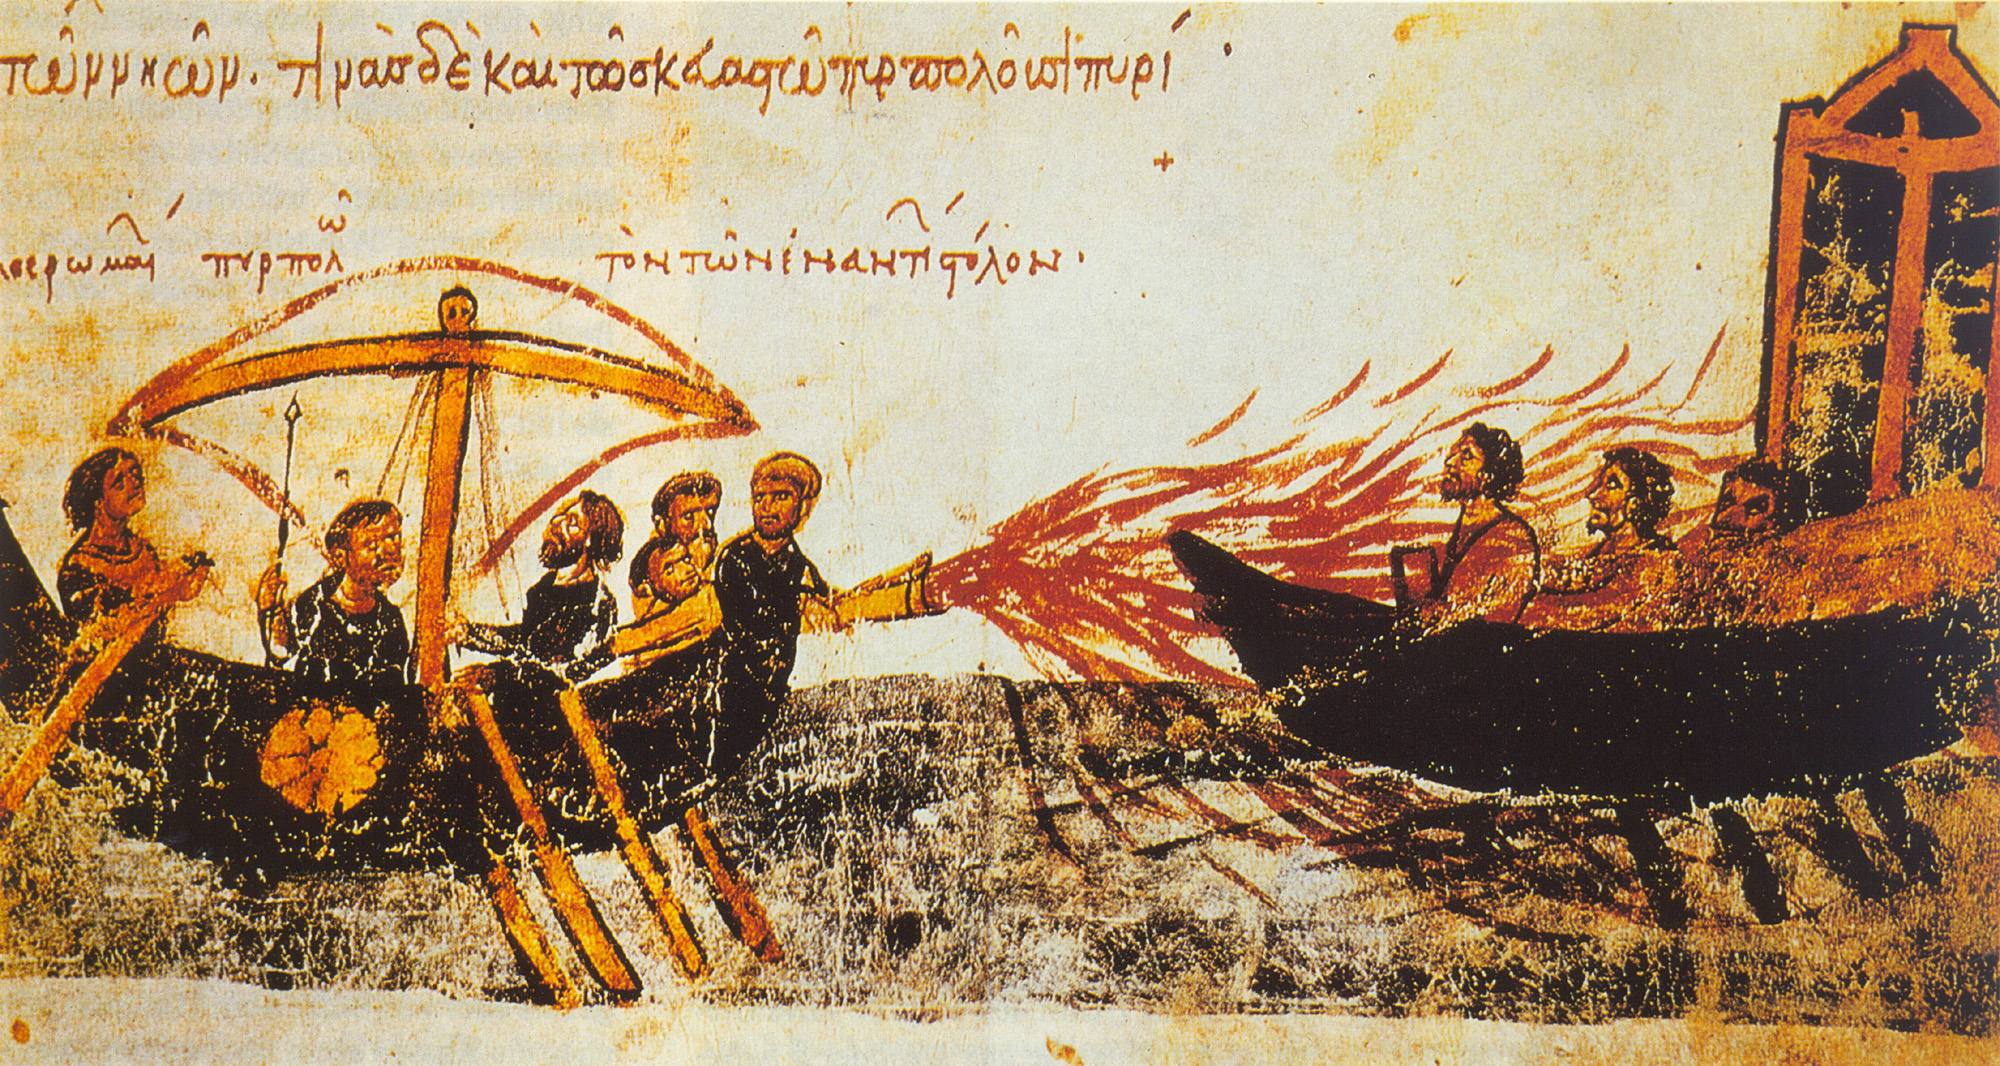 https://i1.wp.com/upload.wikimedia.org/wikipedia/commons/archive/f/f7/20110914132051%21Greekfire-madridskylitzes1.jpg